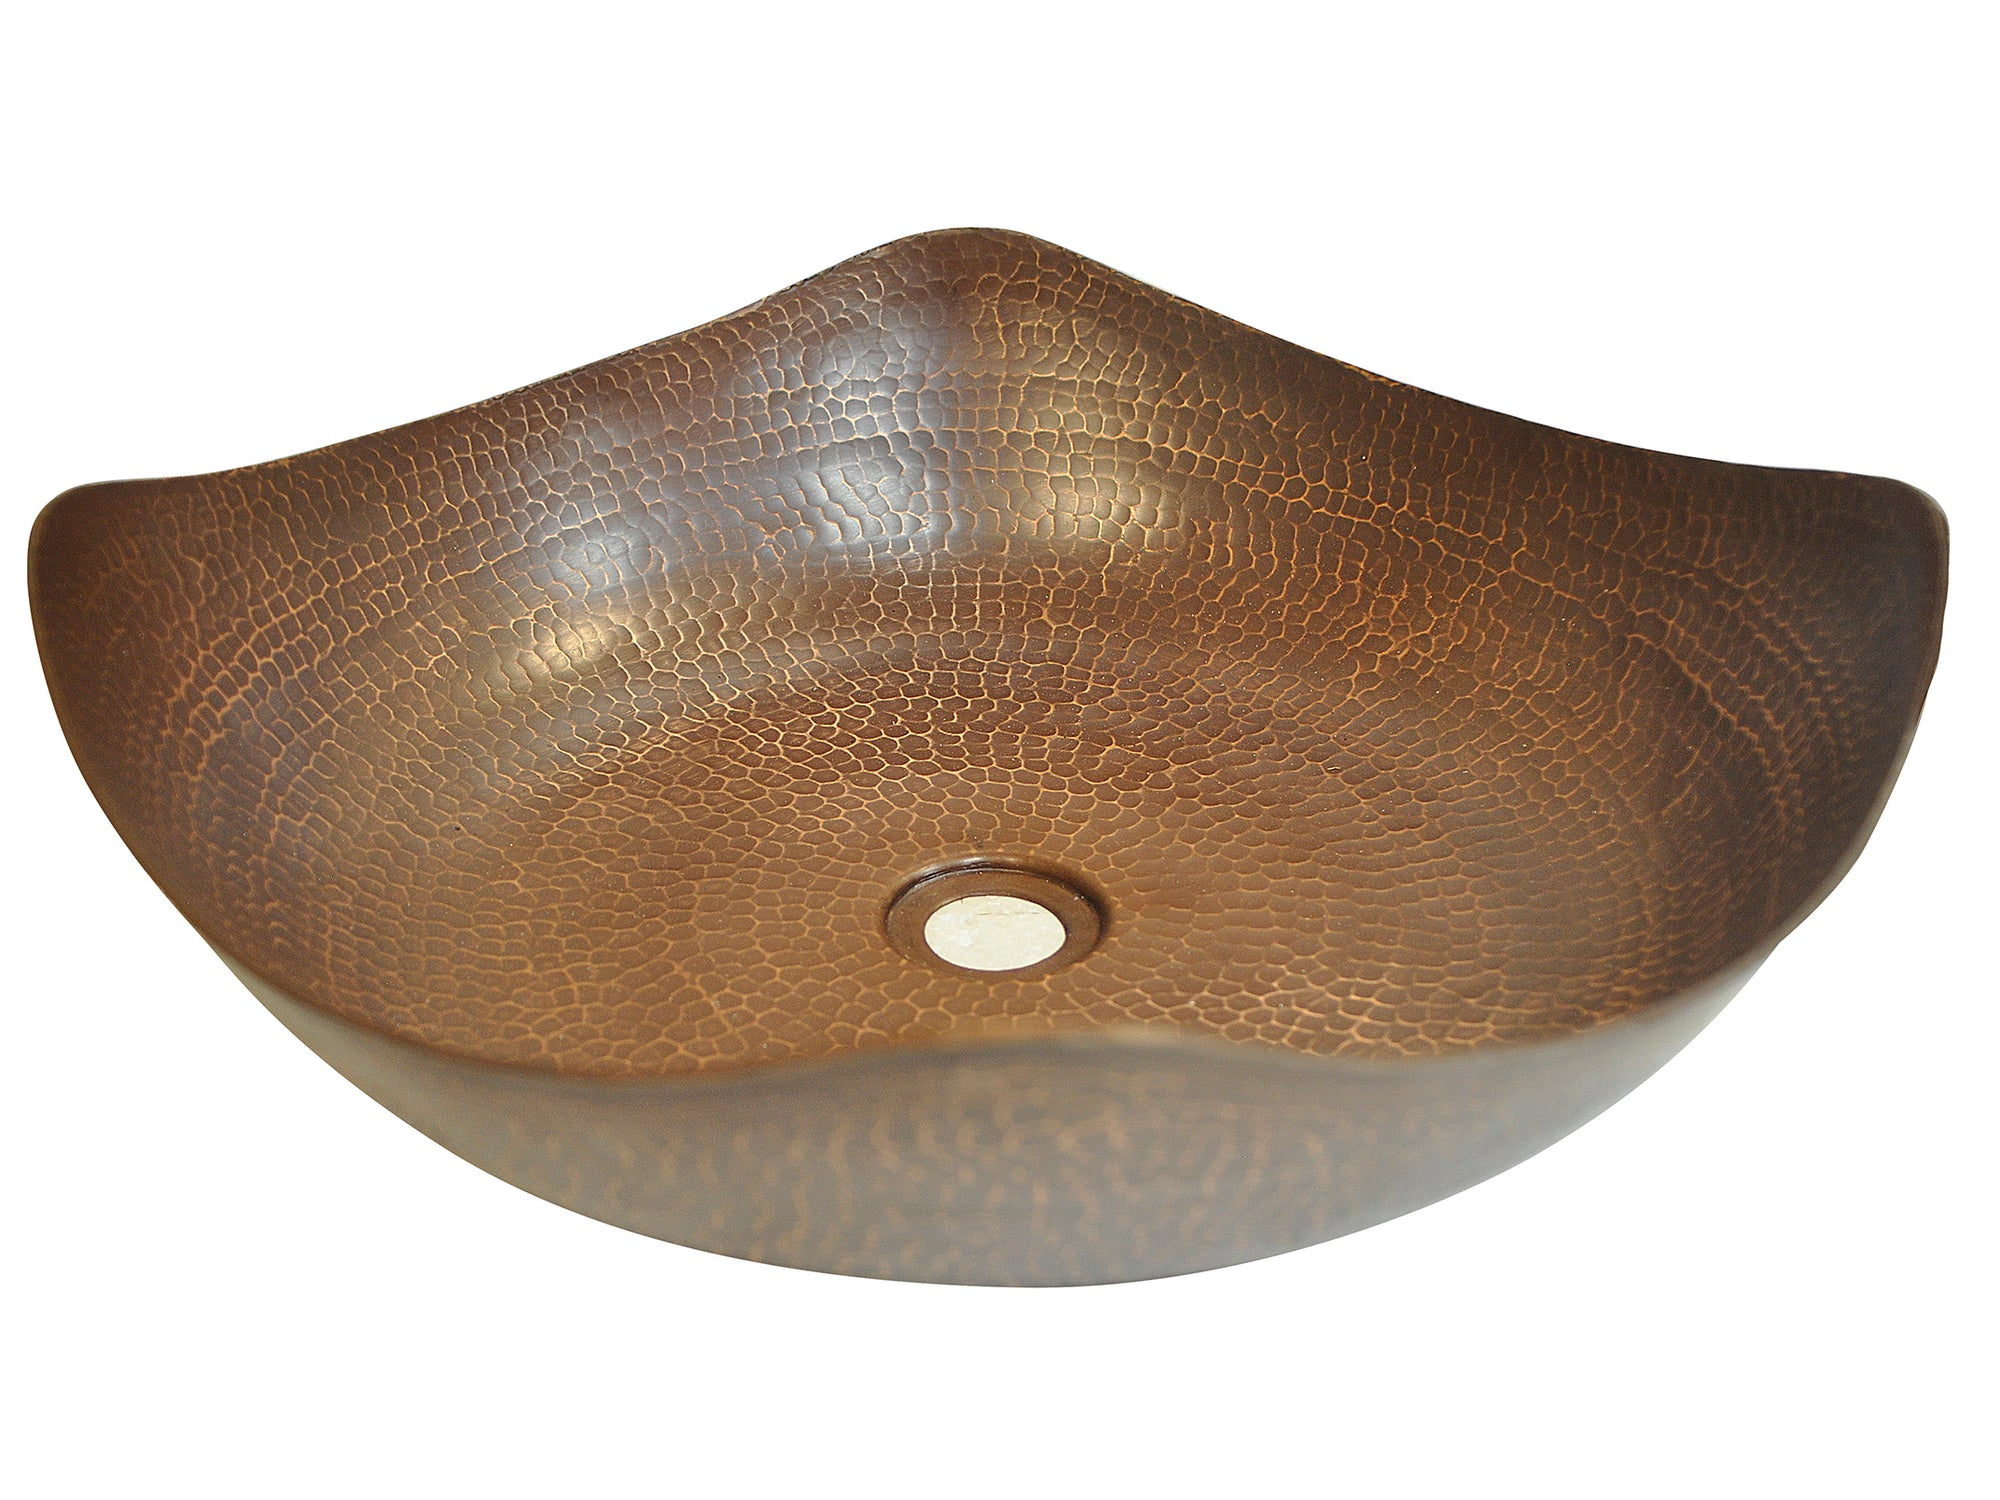 Hammered Copper Vessel Sink with Four Peaks Design